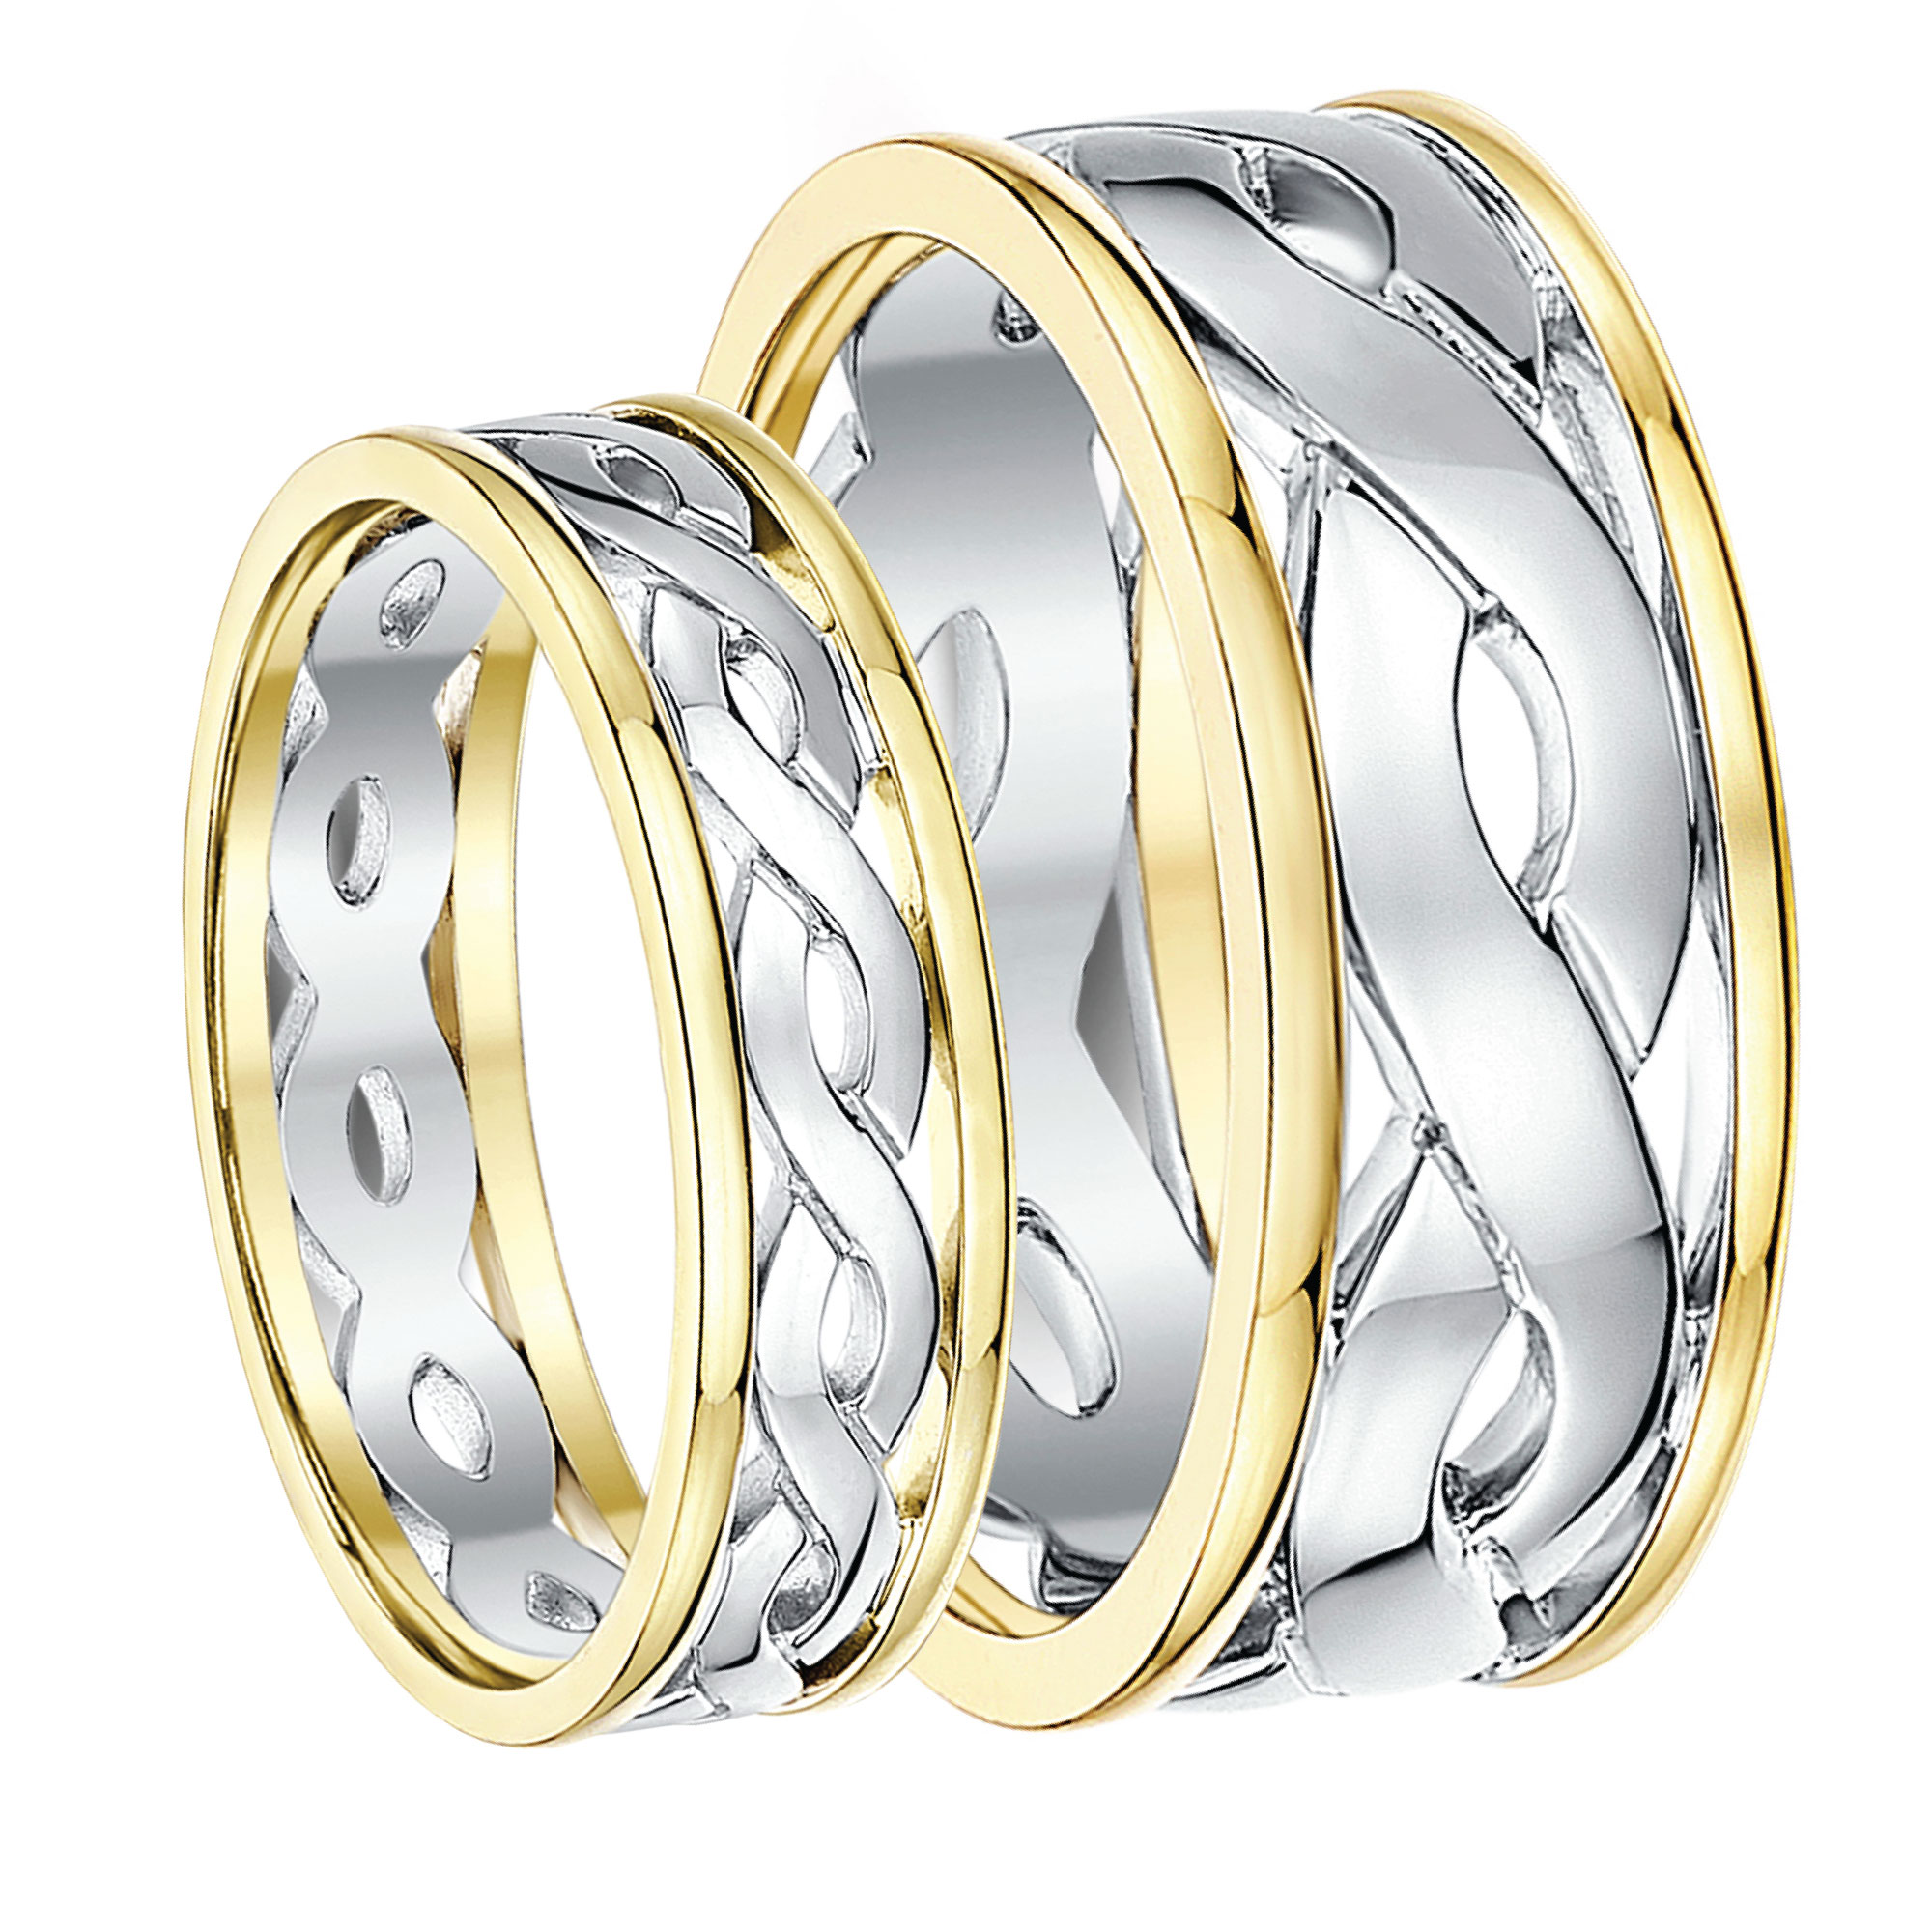 gevery ring wedding mens category patterned product wide rings flat